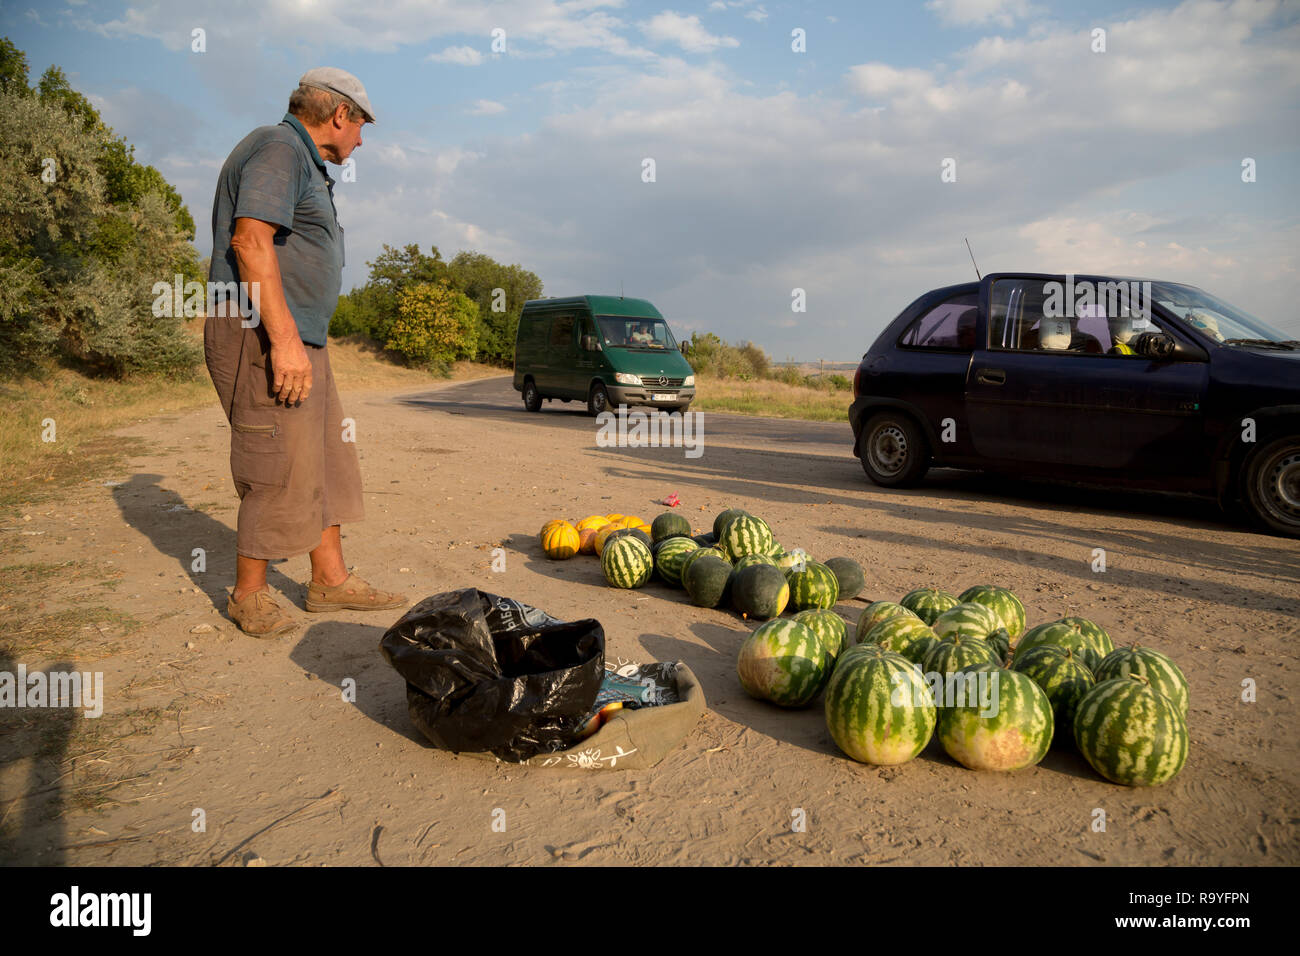 30.08.2016, Causeni, Rajon Causeni, Republik Moldau - Bauer verkauft Melonen an der Landstrasse. 00A160830D452CARO.JPG [MODEL RELEASE: NO, PROPERTY RE Stock Photo